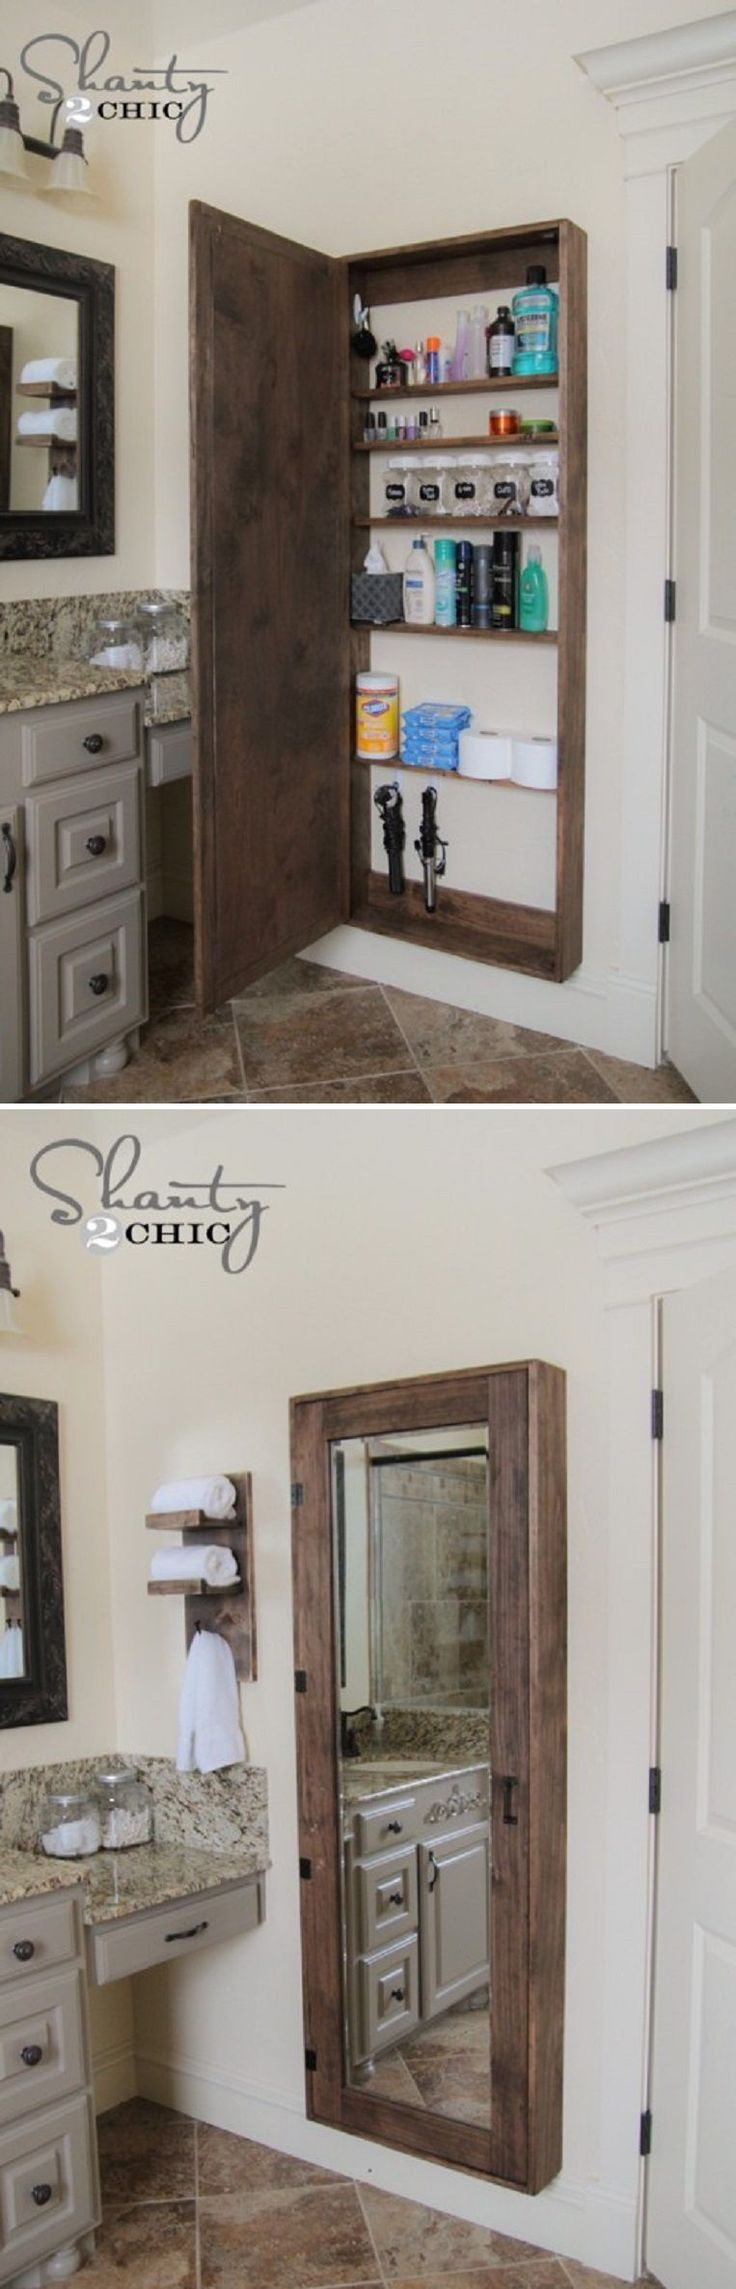 DIY Bathroom mirror storage case that holds everything. - 17 Repurposed DIY Bathroom Storage Solutions | GleamItUp